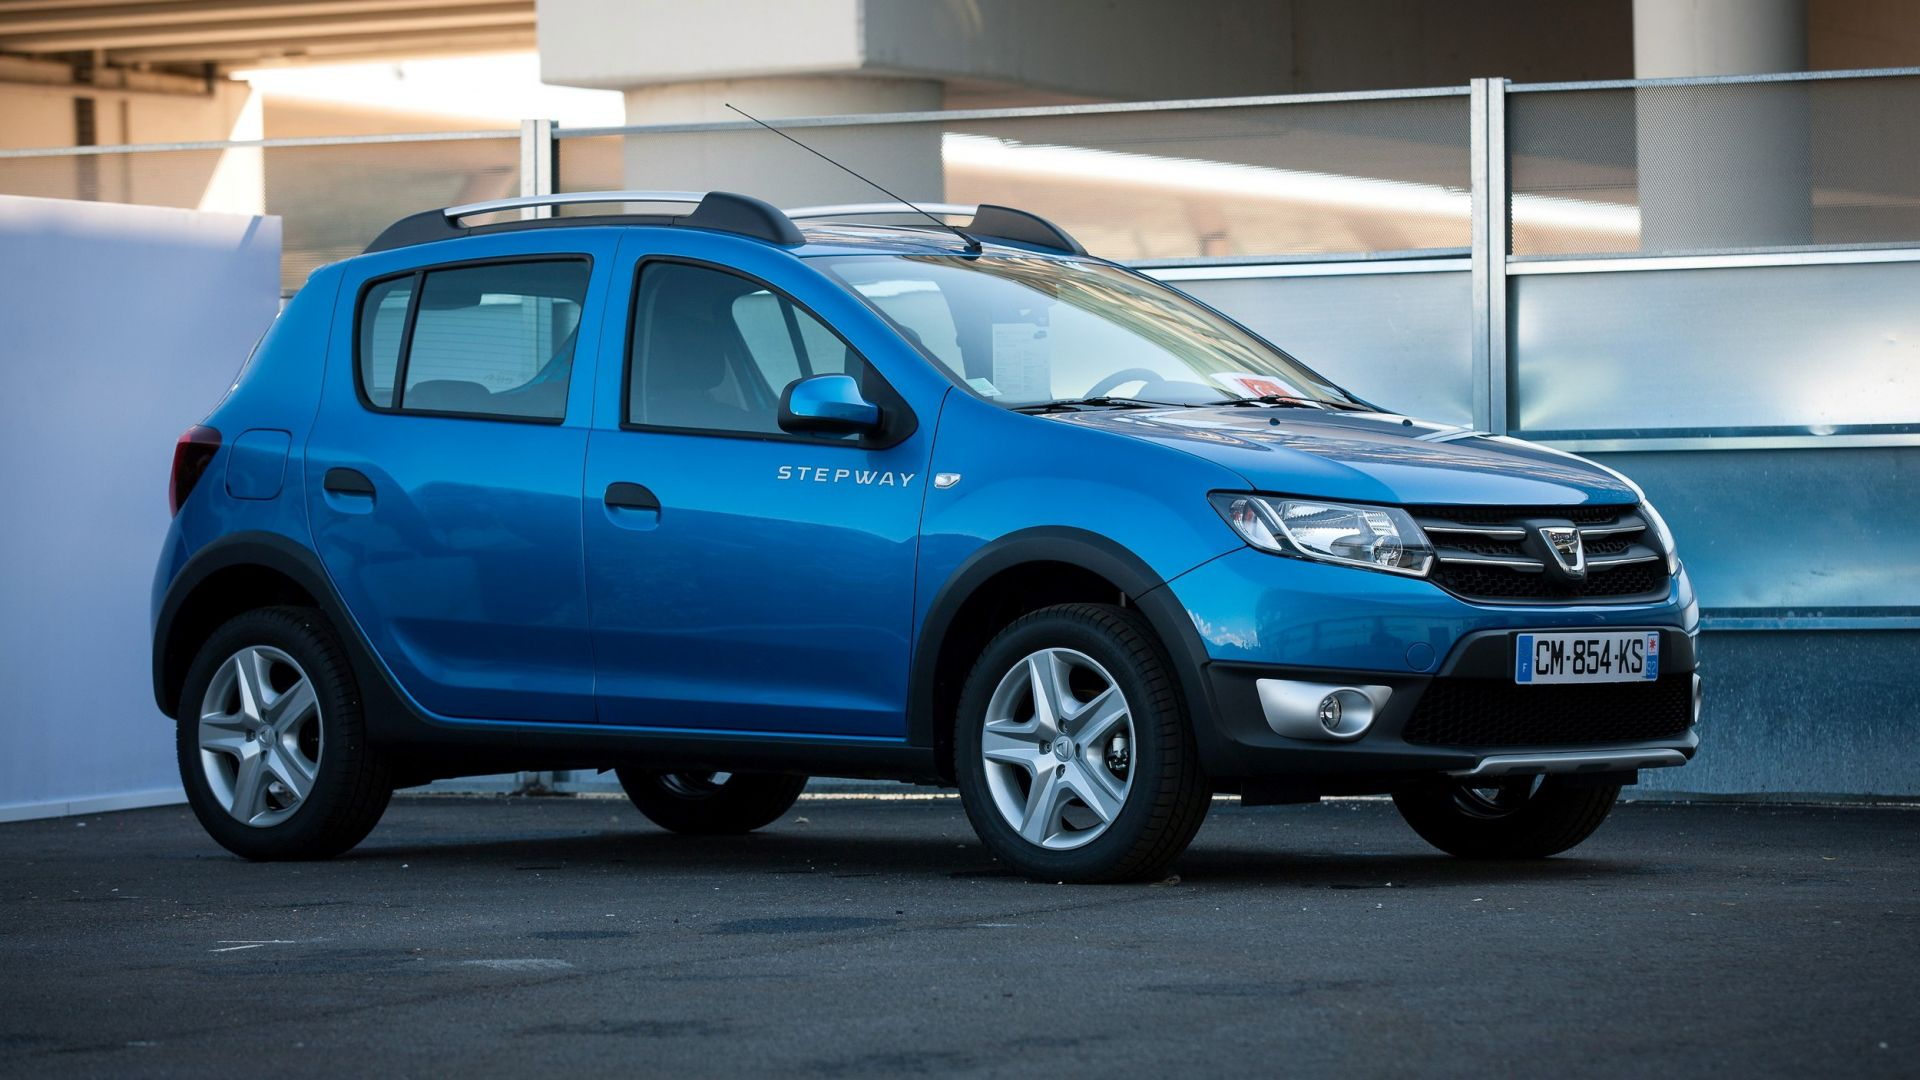 prova dacia sandero e sandero stepway 2013 motorbox. Black Bedroom Furniture Sets. Home Design Ideas